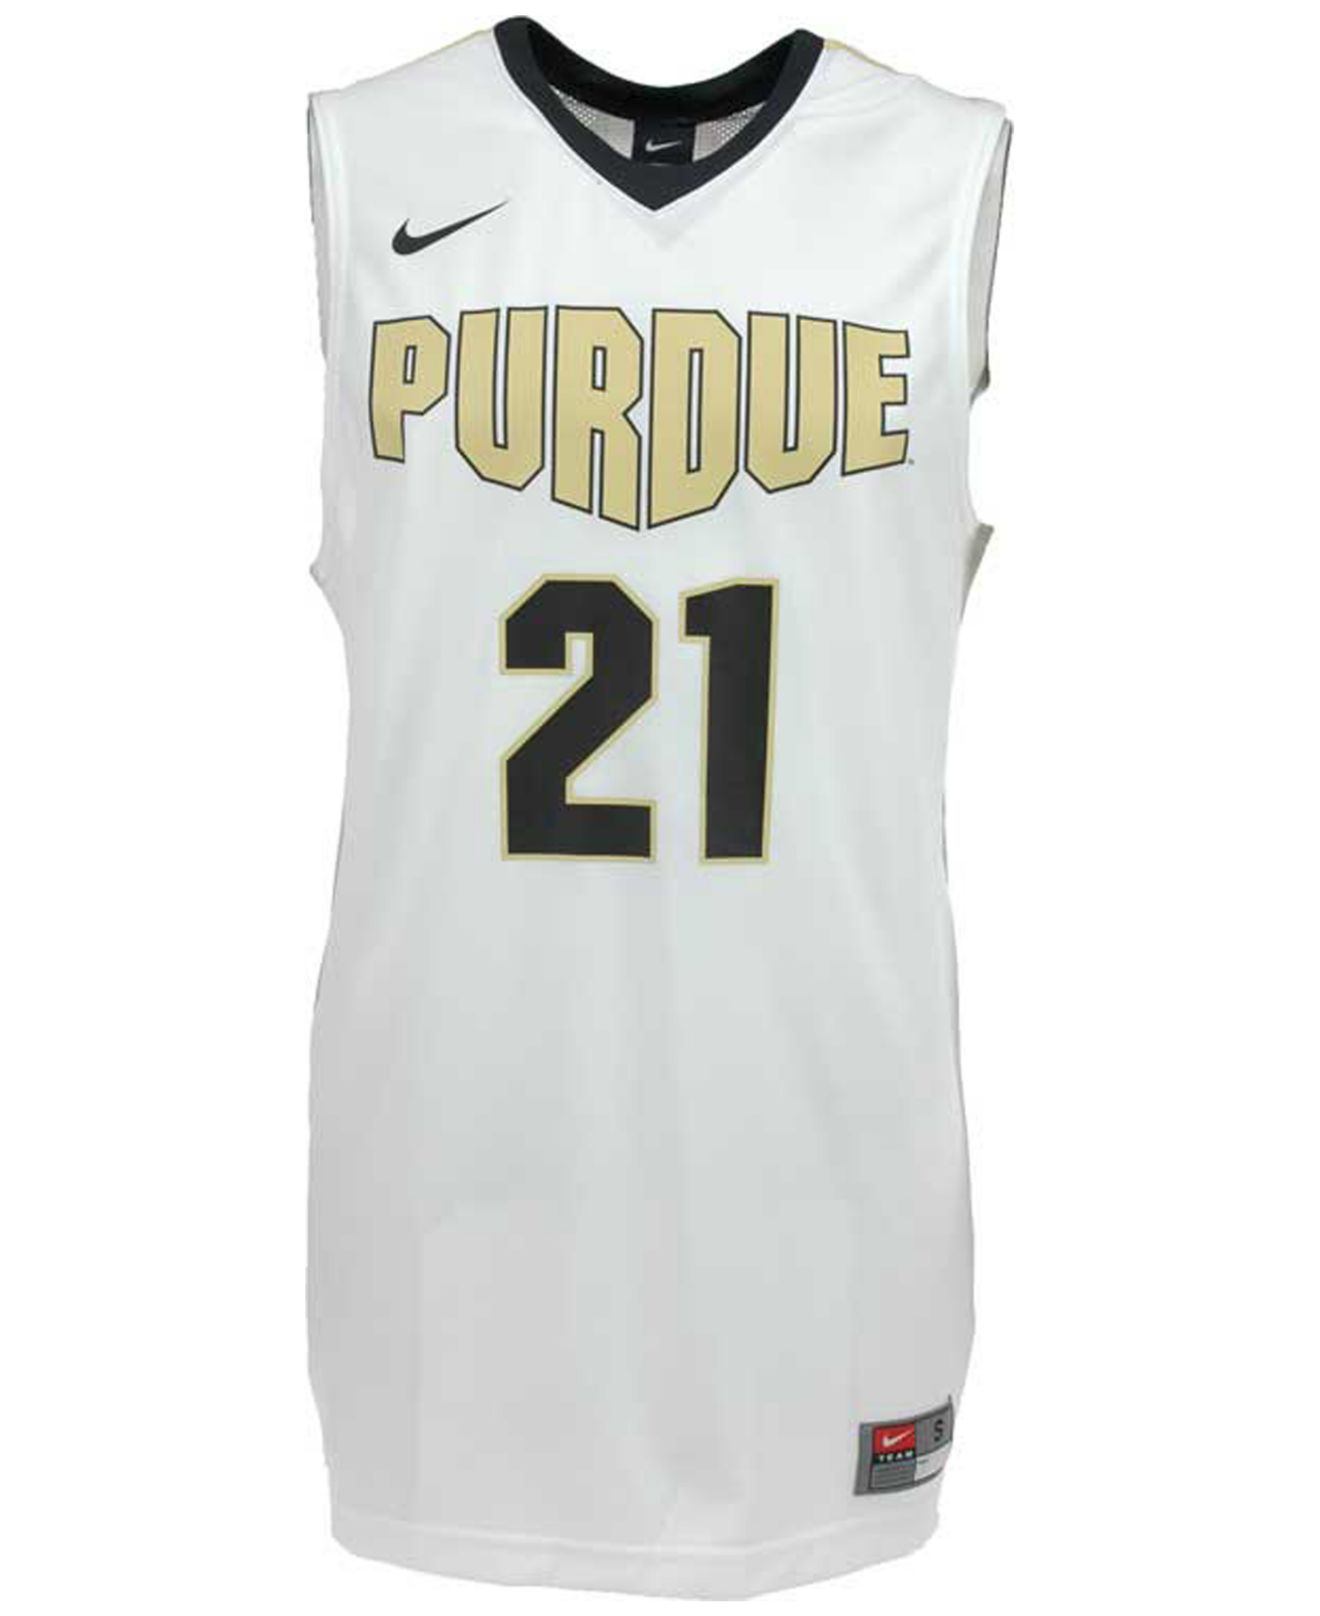 48144cc0e44 Nike Men S Purdue Boilermakers Basketball Jersey in White for Men - Lyst